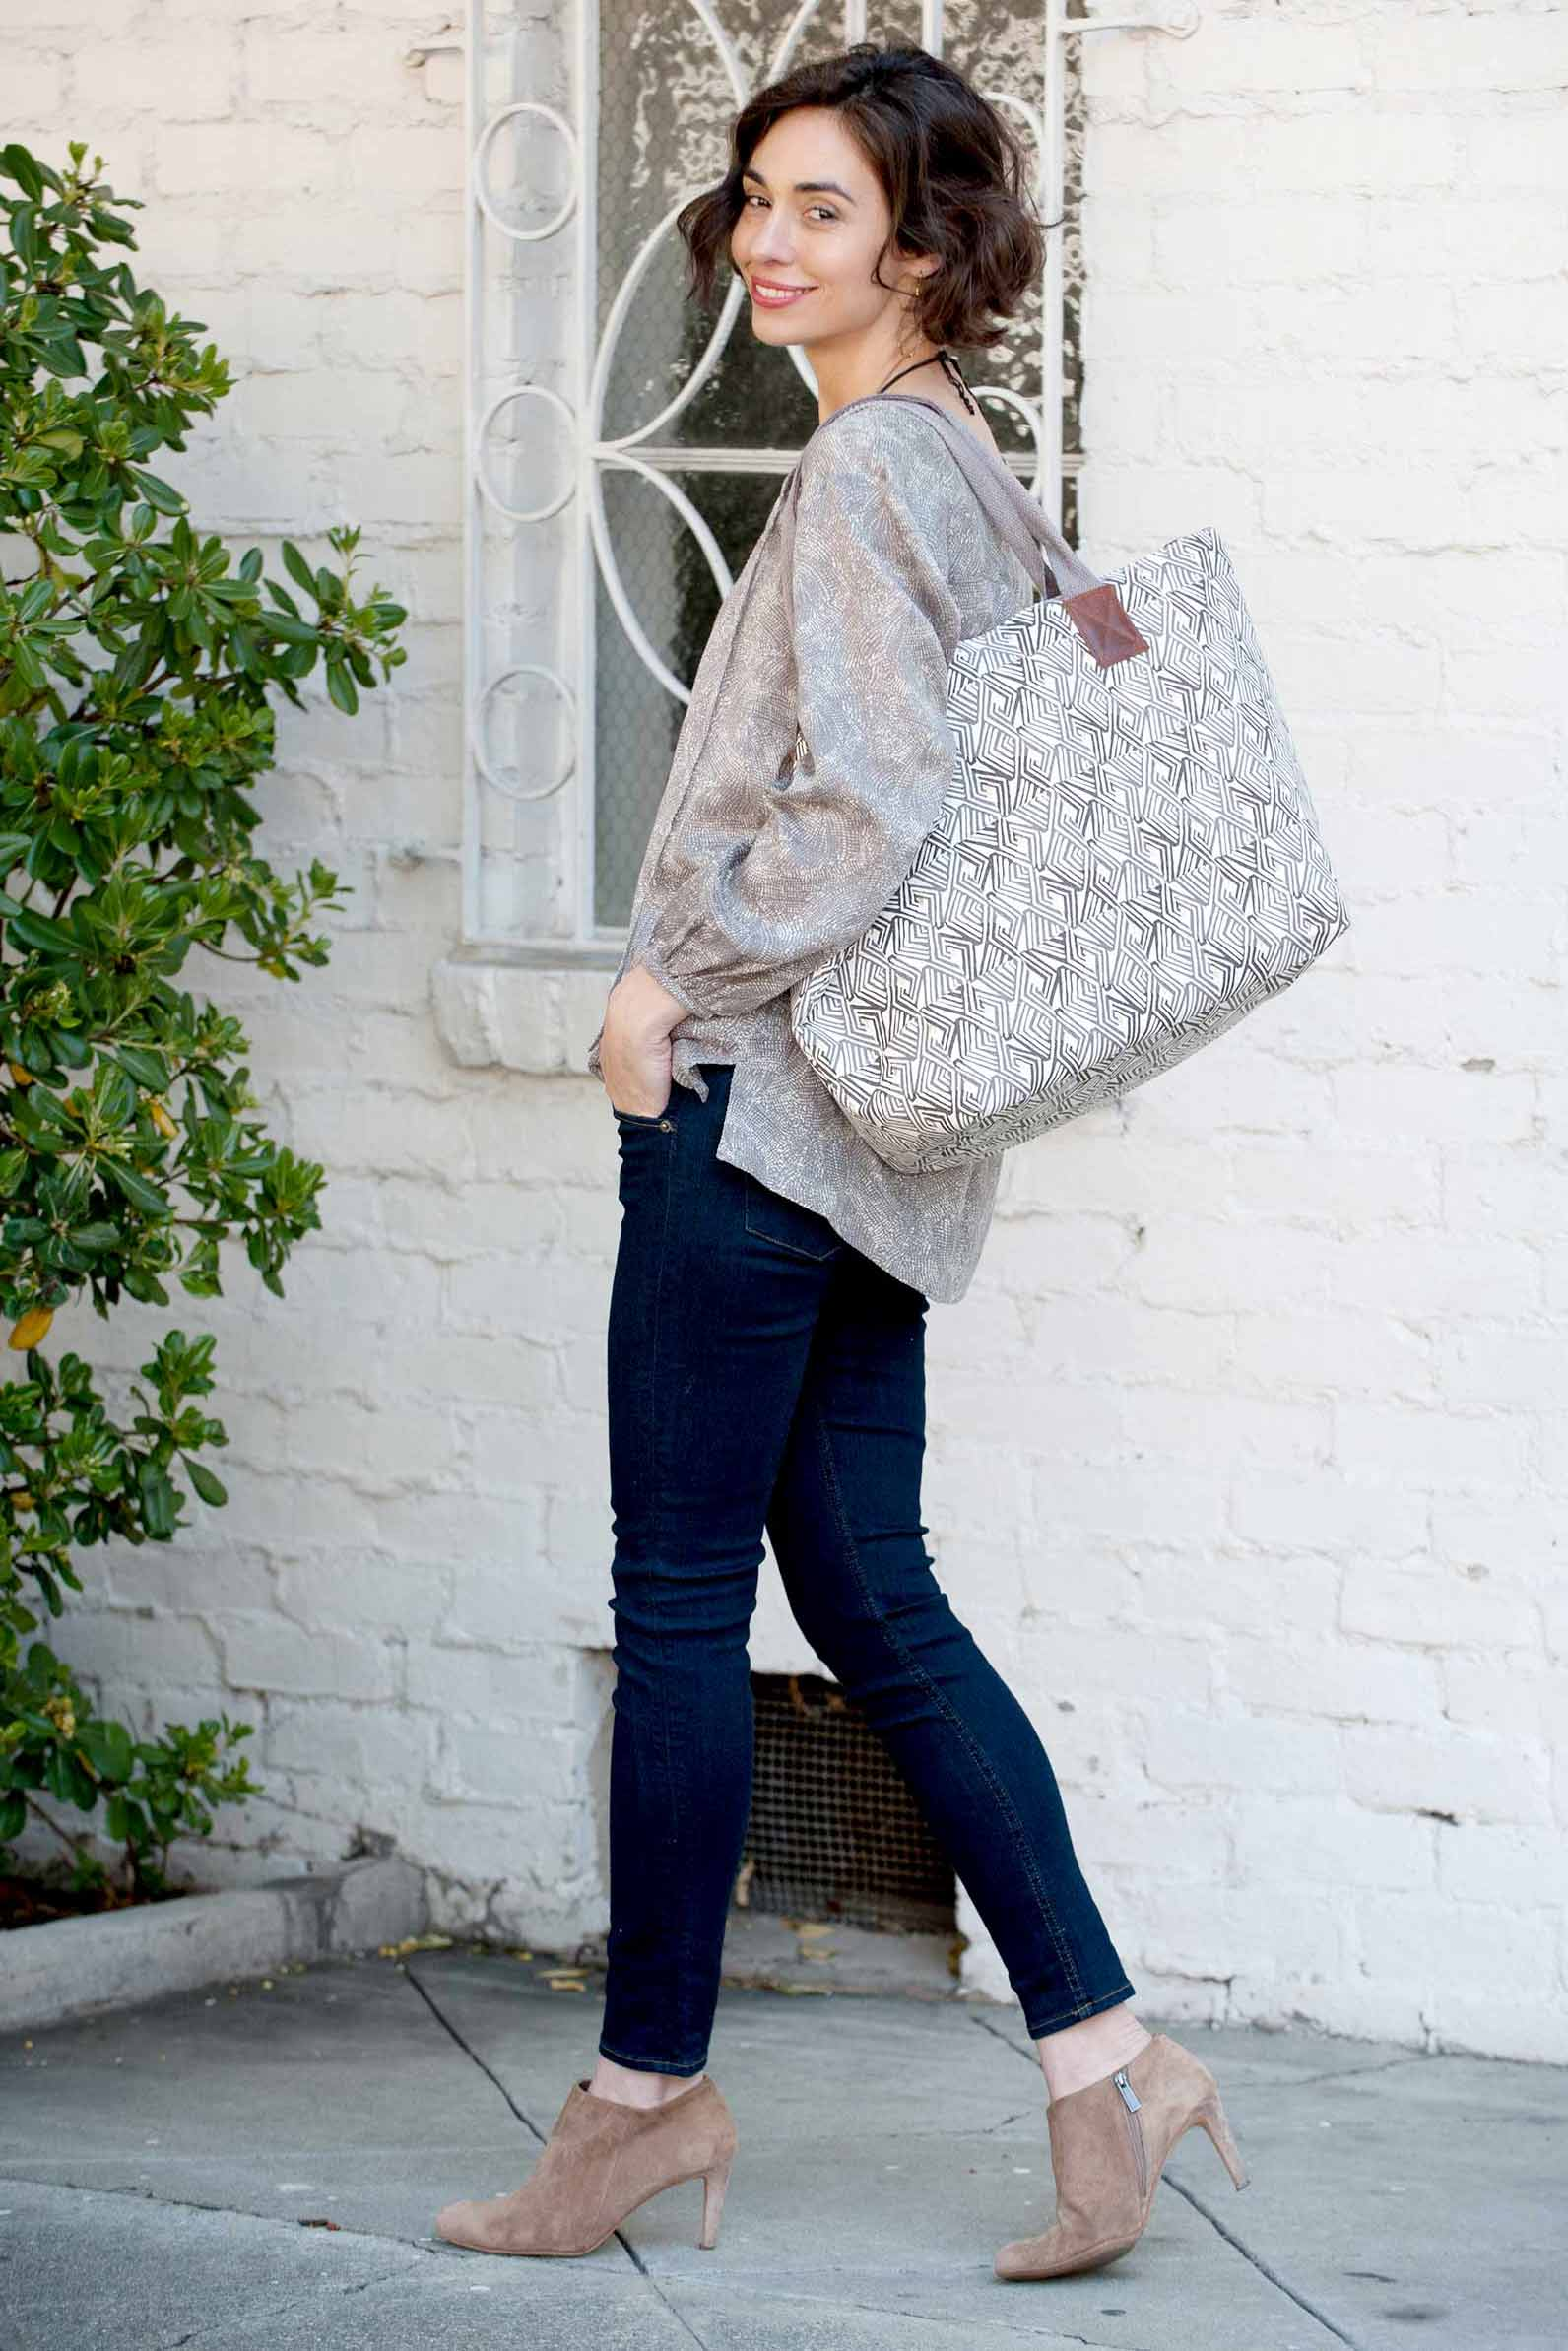 woman wearing grey tunic and grey tote bag with jeans